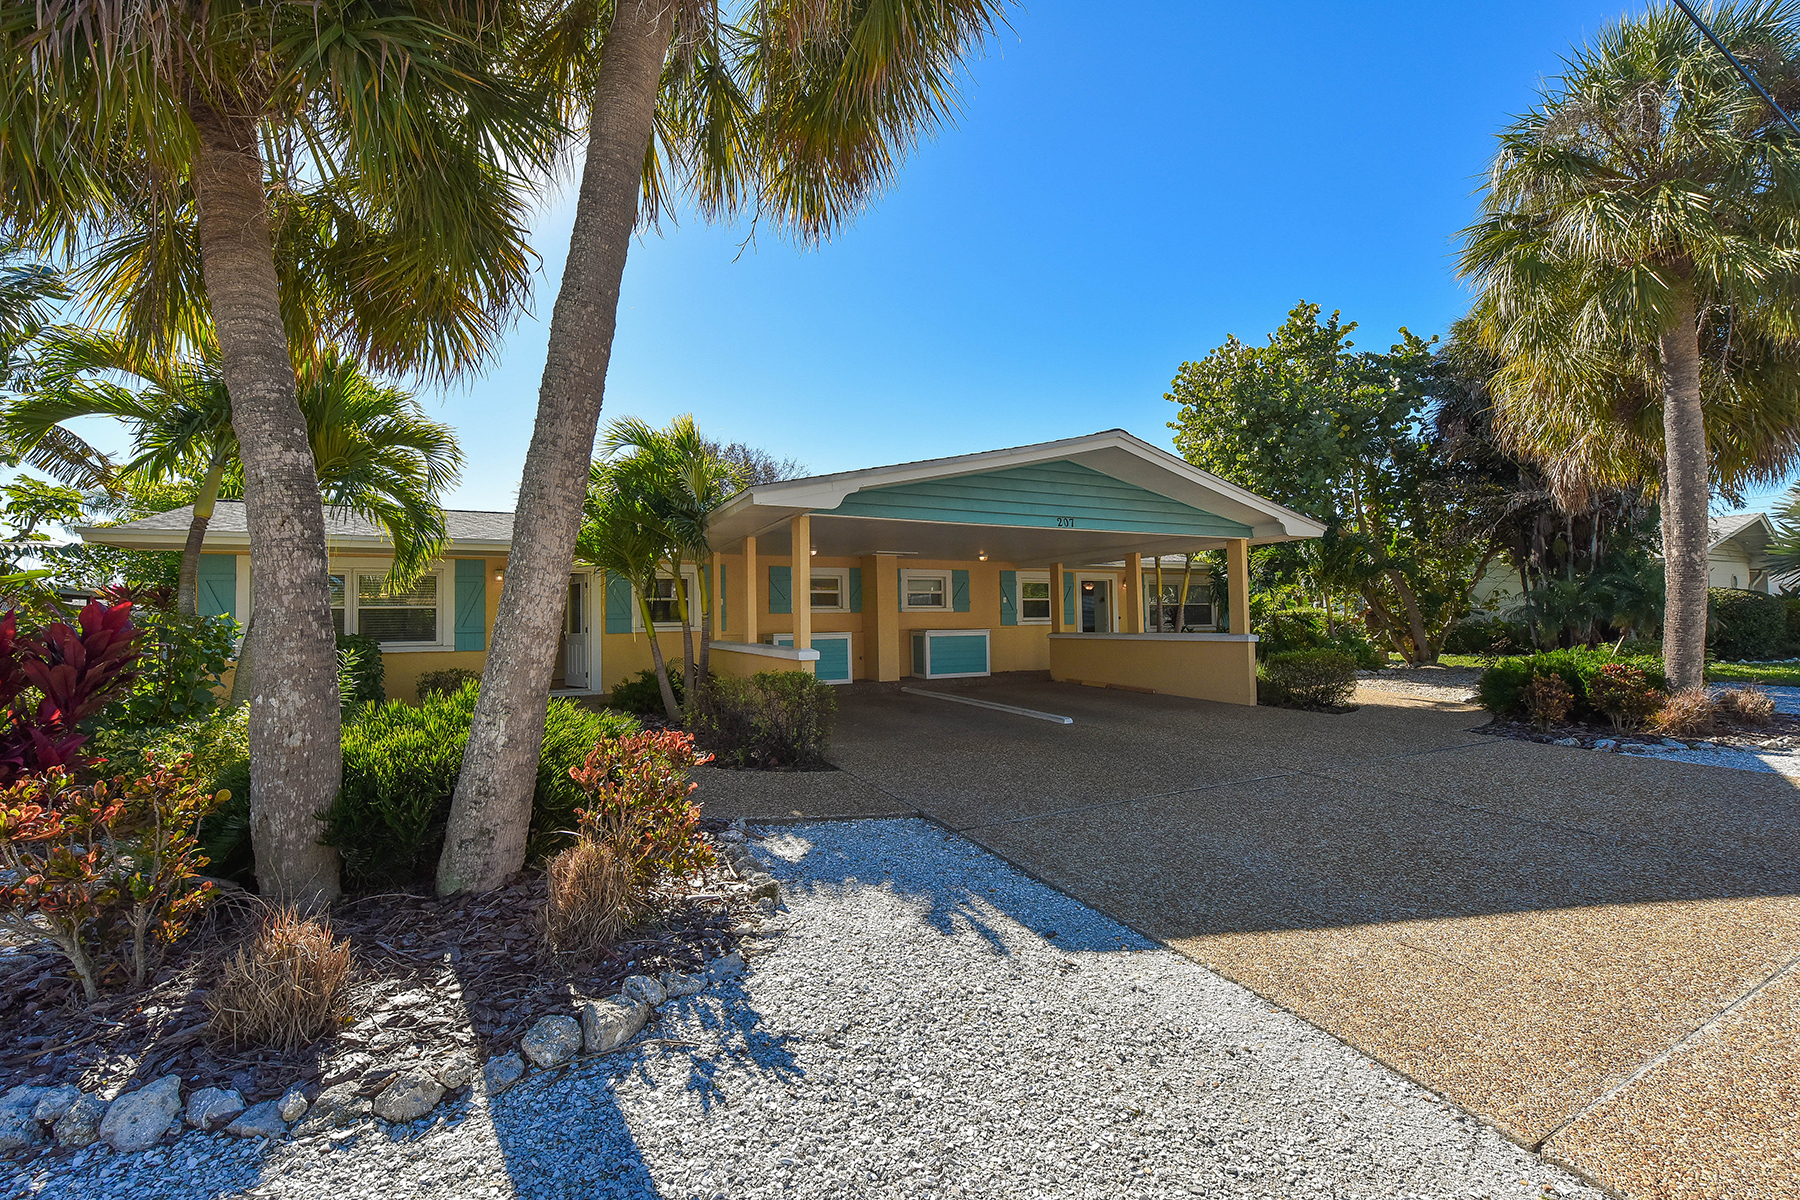 Multi-Family Home for Sale at HOLMES BEACH 207 70th St Holmes Beach, Florida, 34217 United States